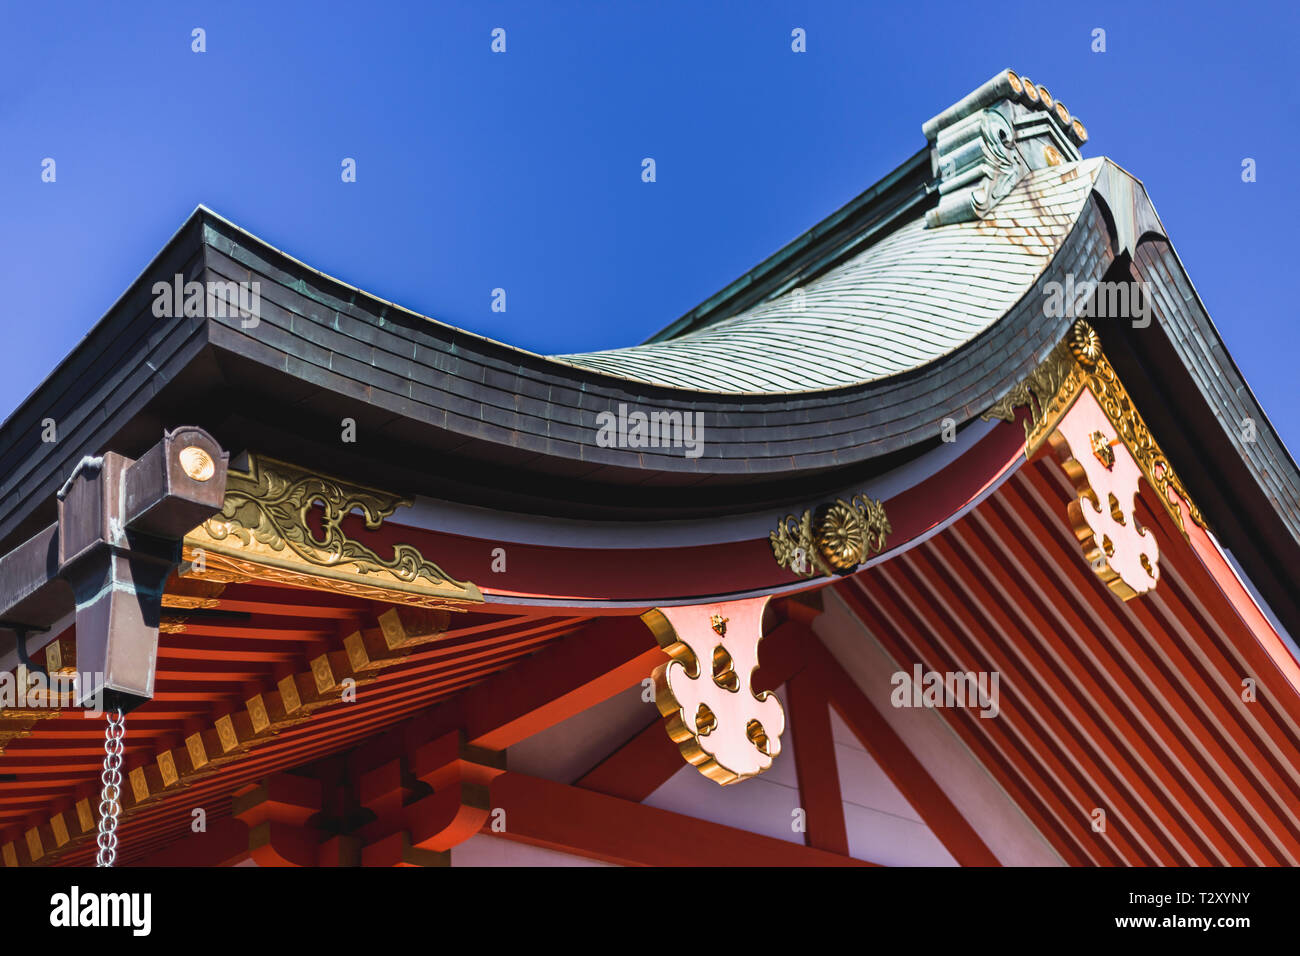 Tiled Roof Of a Shrine at Fushimi Inari in Kyoto, Japan - Stock Image